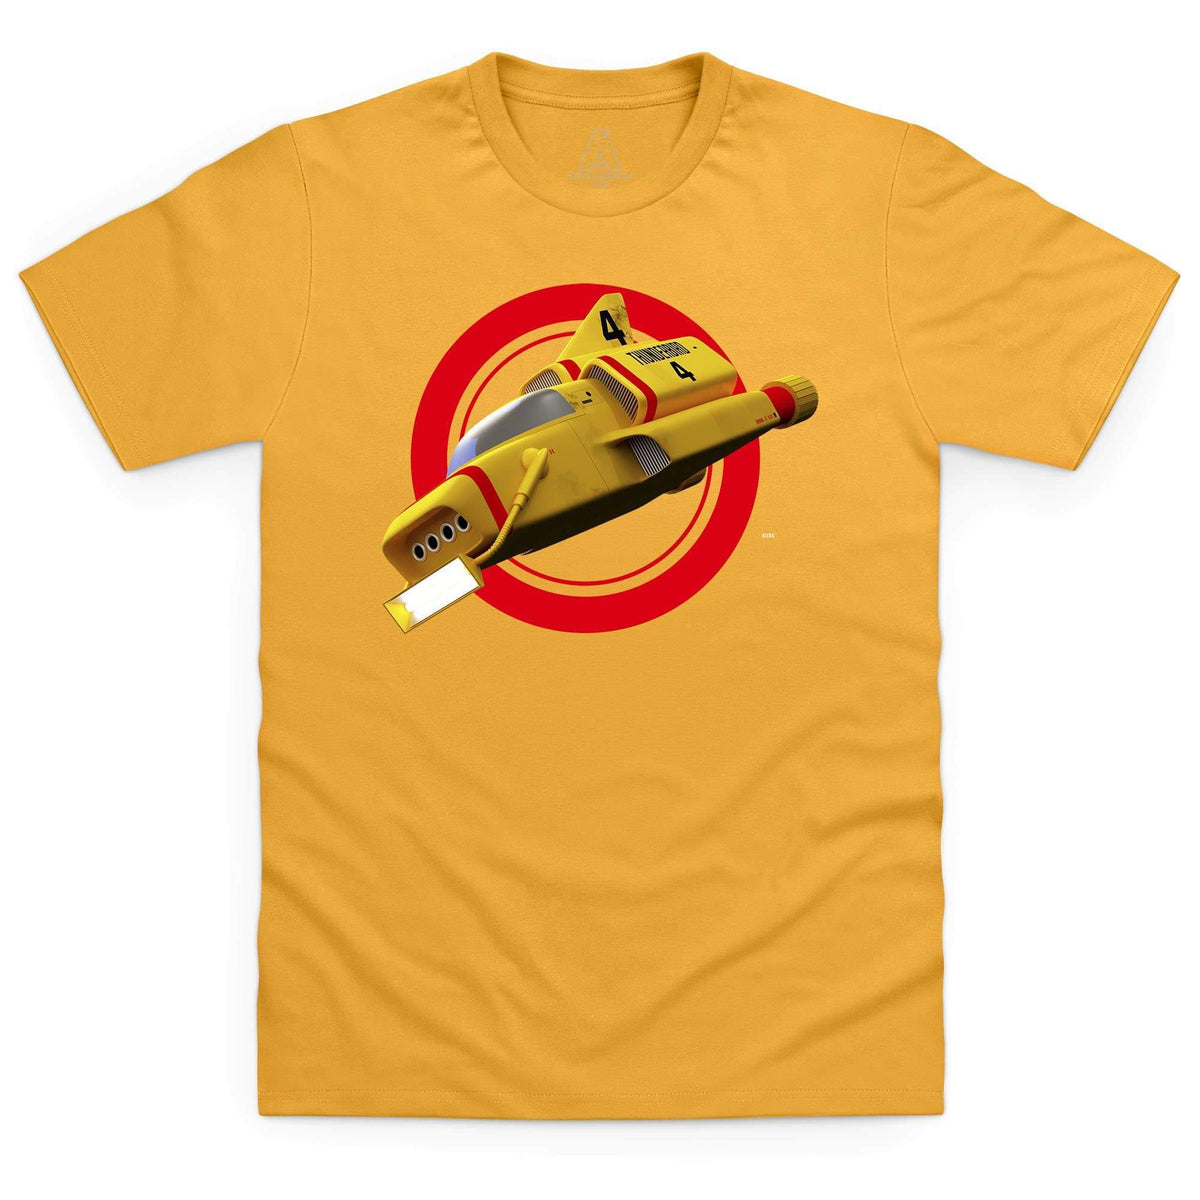 Thunderbird 4 T-Shirt [Official & Exclusive] - The Gerry Anderson Store